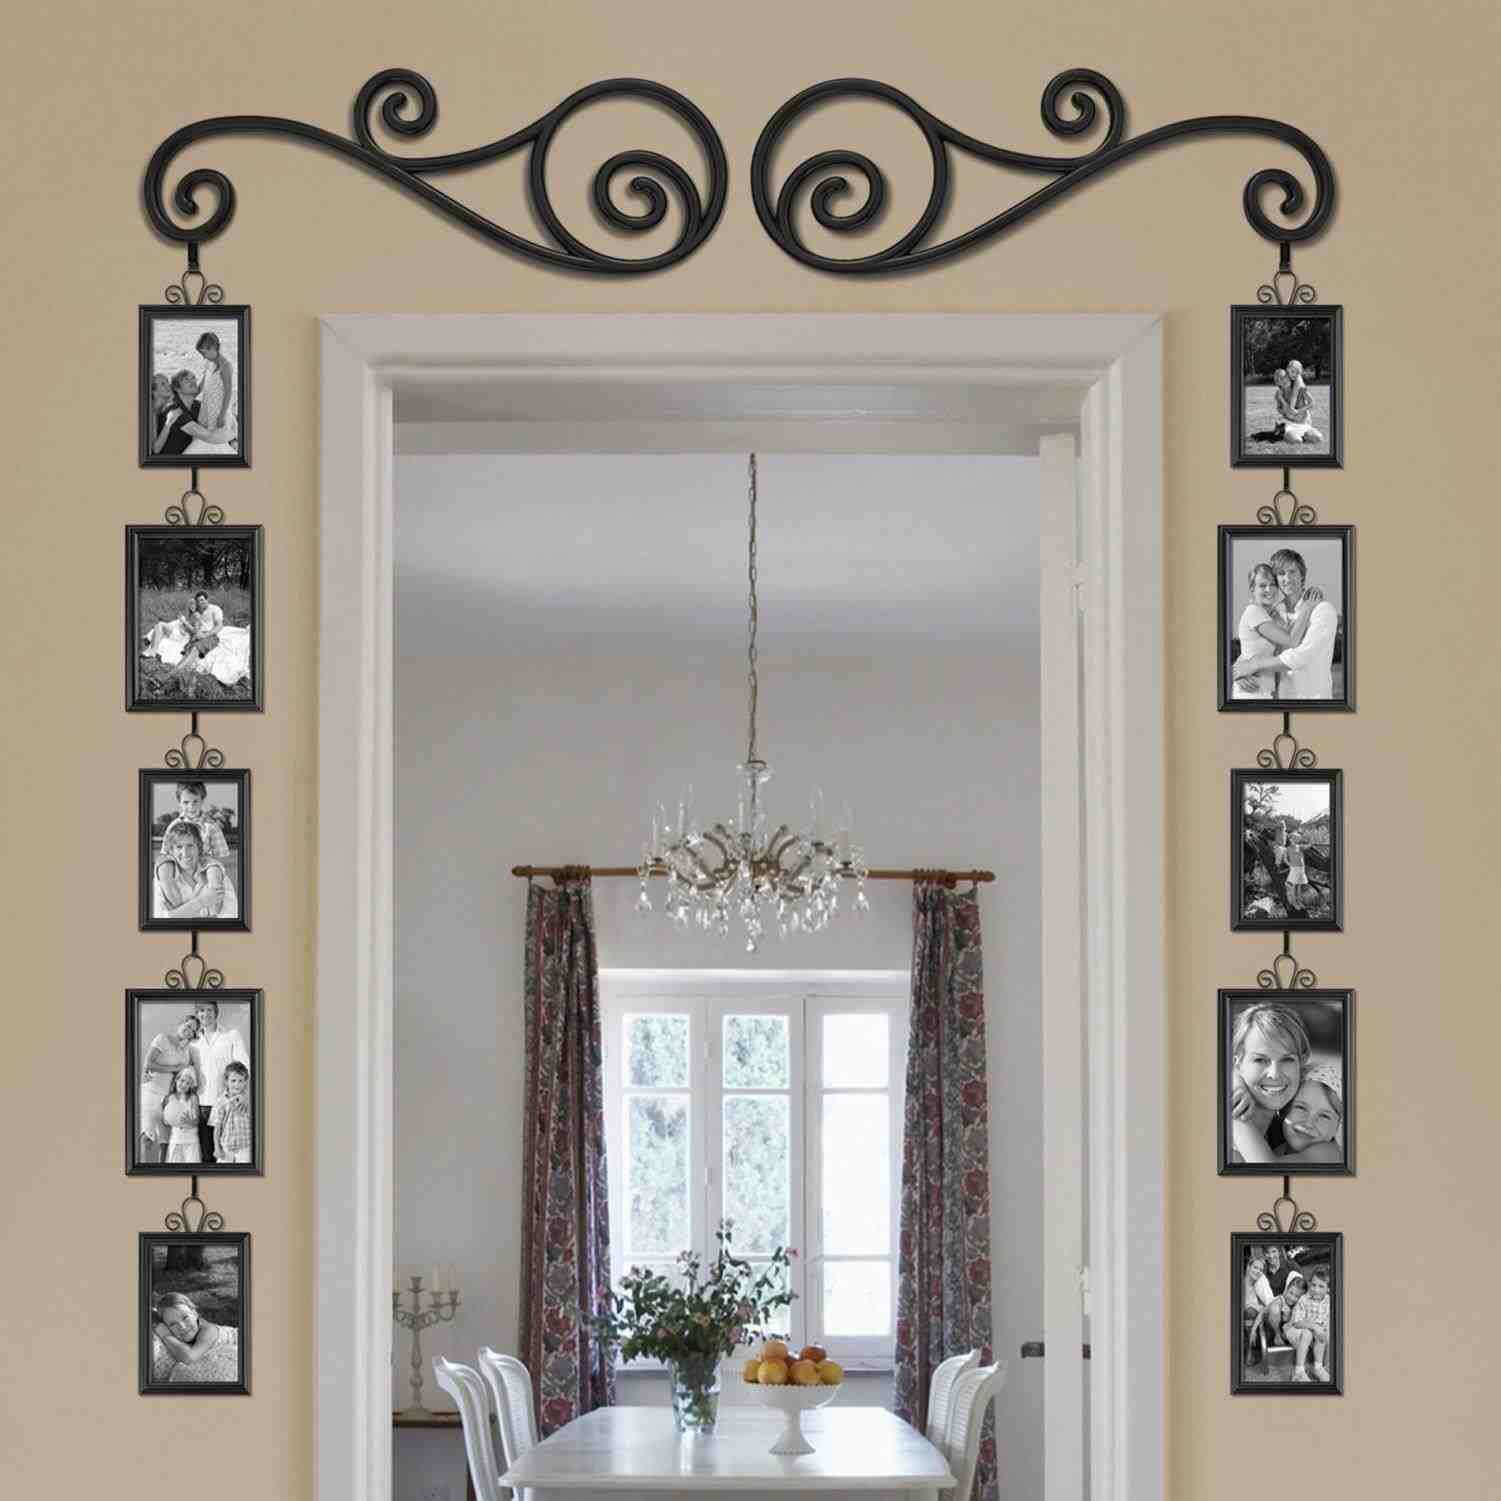 The Collection of Could hang on either hanging bedroom wall